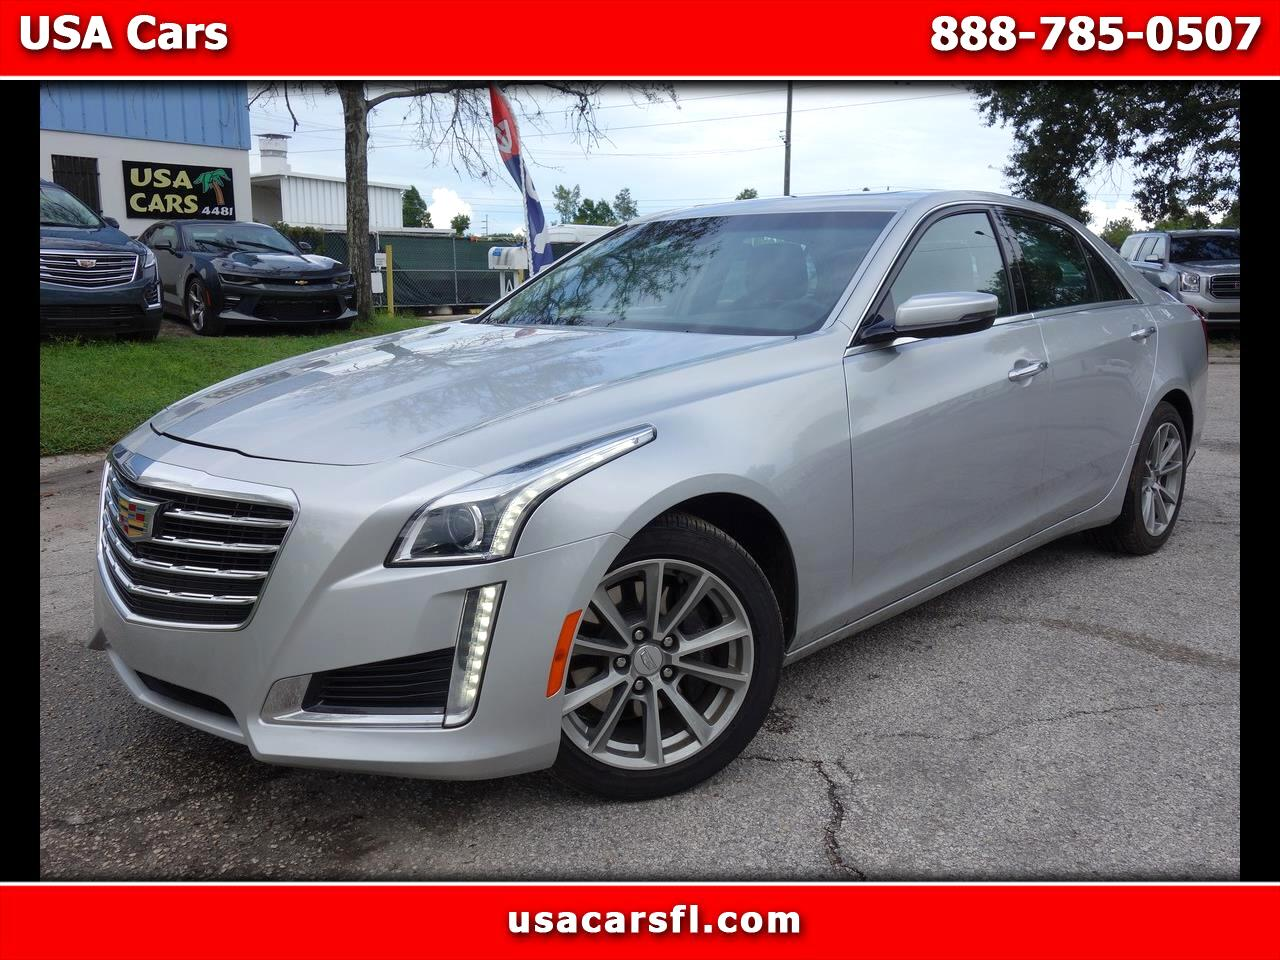 2019 Cadillac CTS Sedan 4dr Sdn 2.0L Turbo Luxury RWD